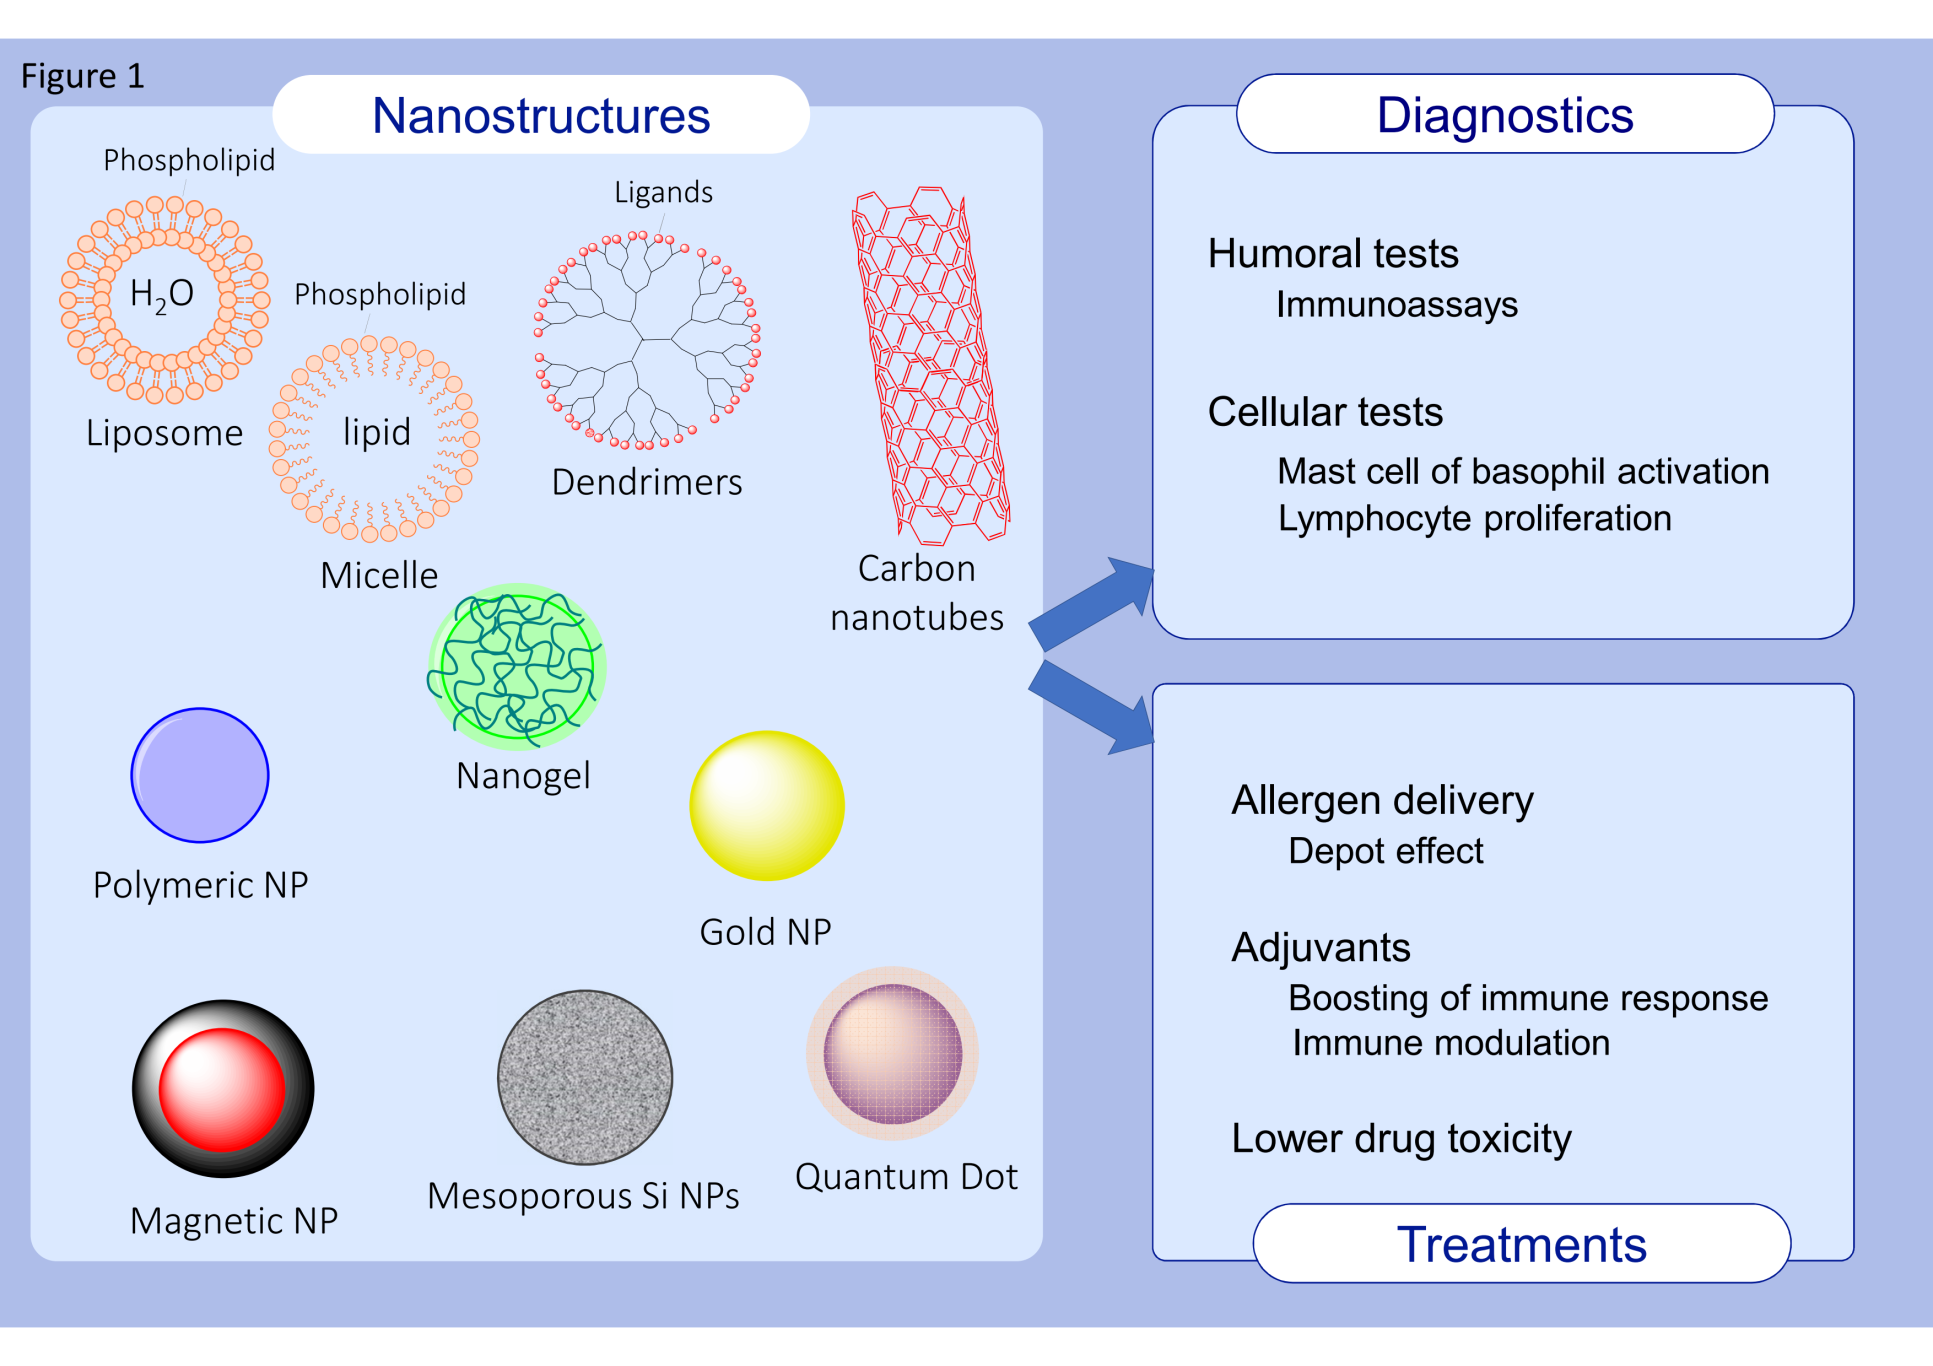 Figures nanotechology applications allergygatemplate 30 06